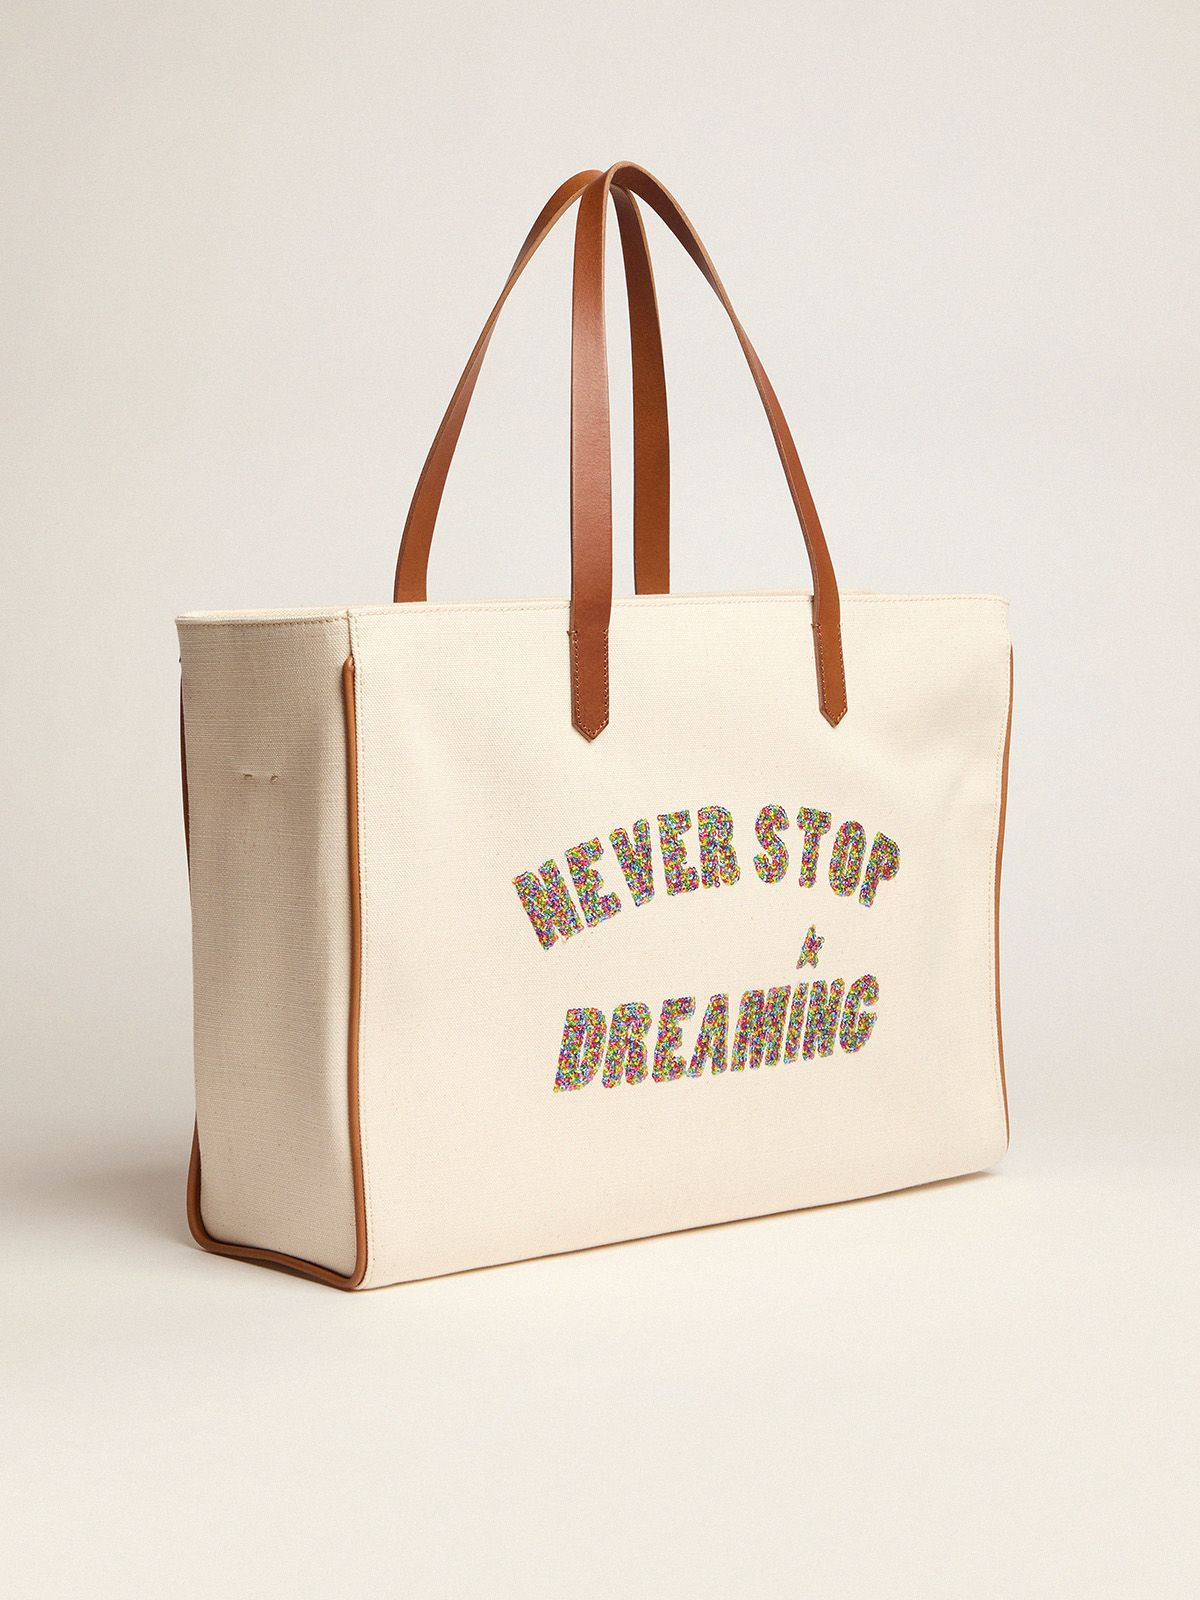 Golden Goose - California East-West Never Stop Dreaming glitter bag in